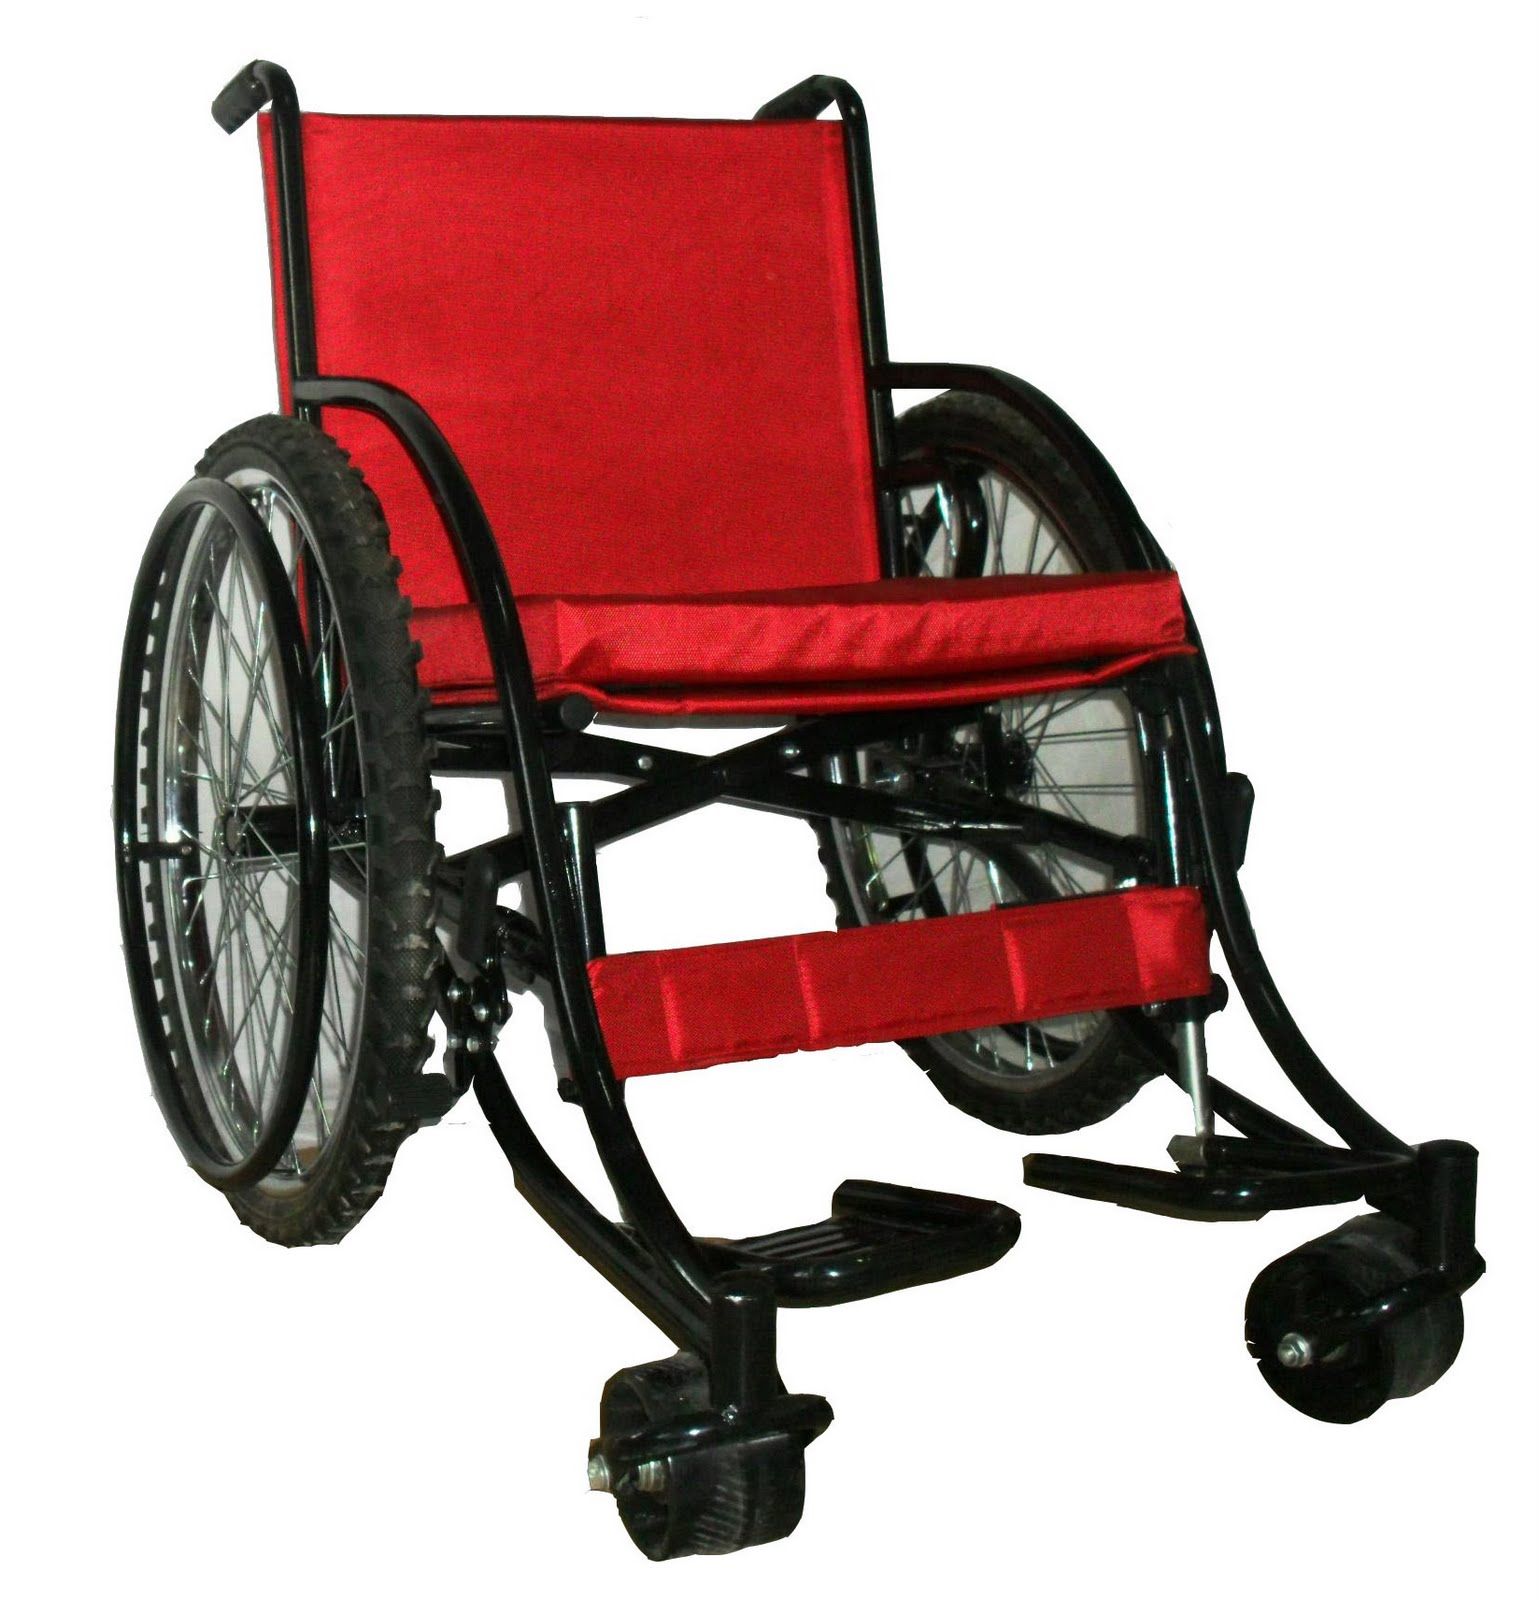 Motorized Recliner Chair Red Thread Promise: Wheelchair Promise Program